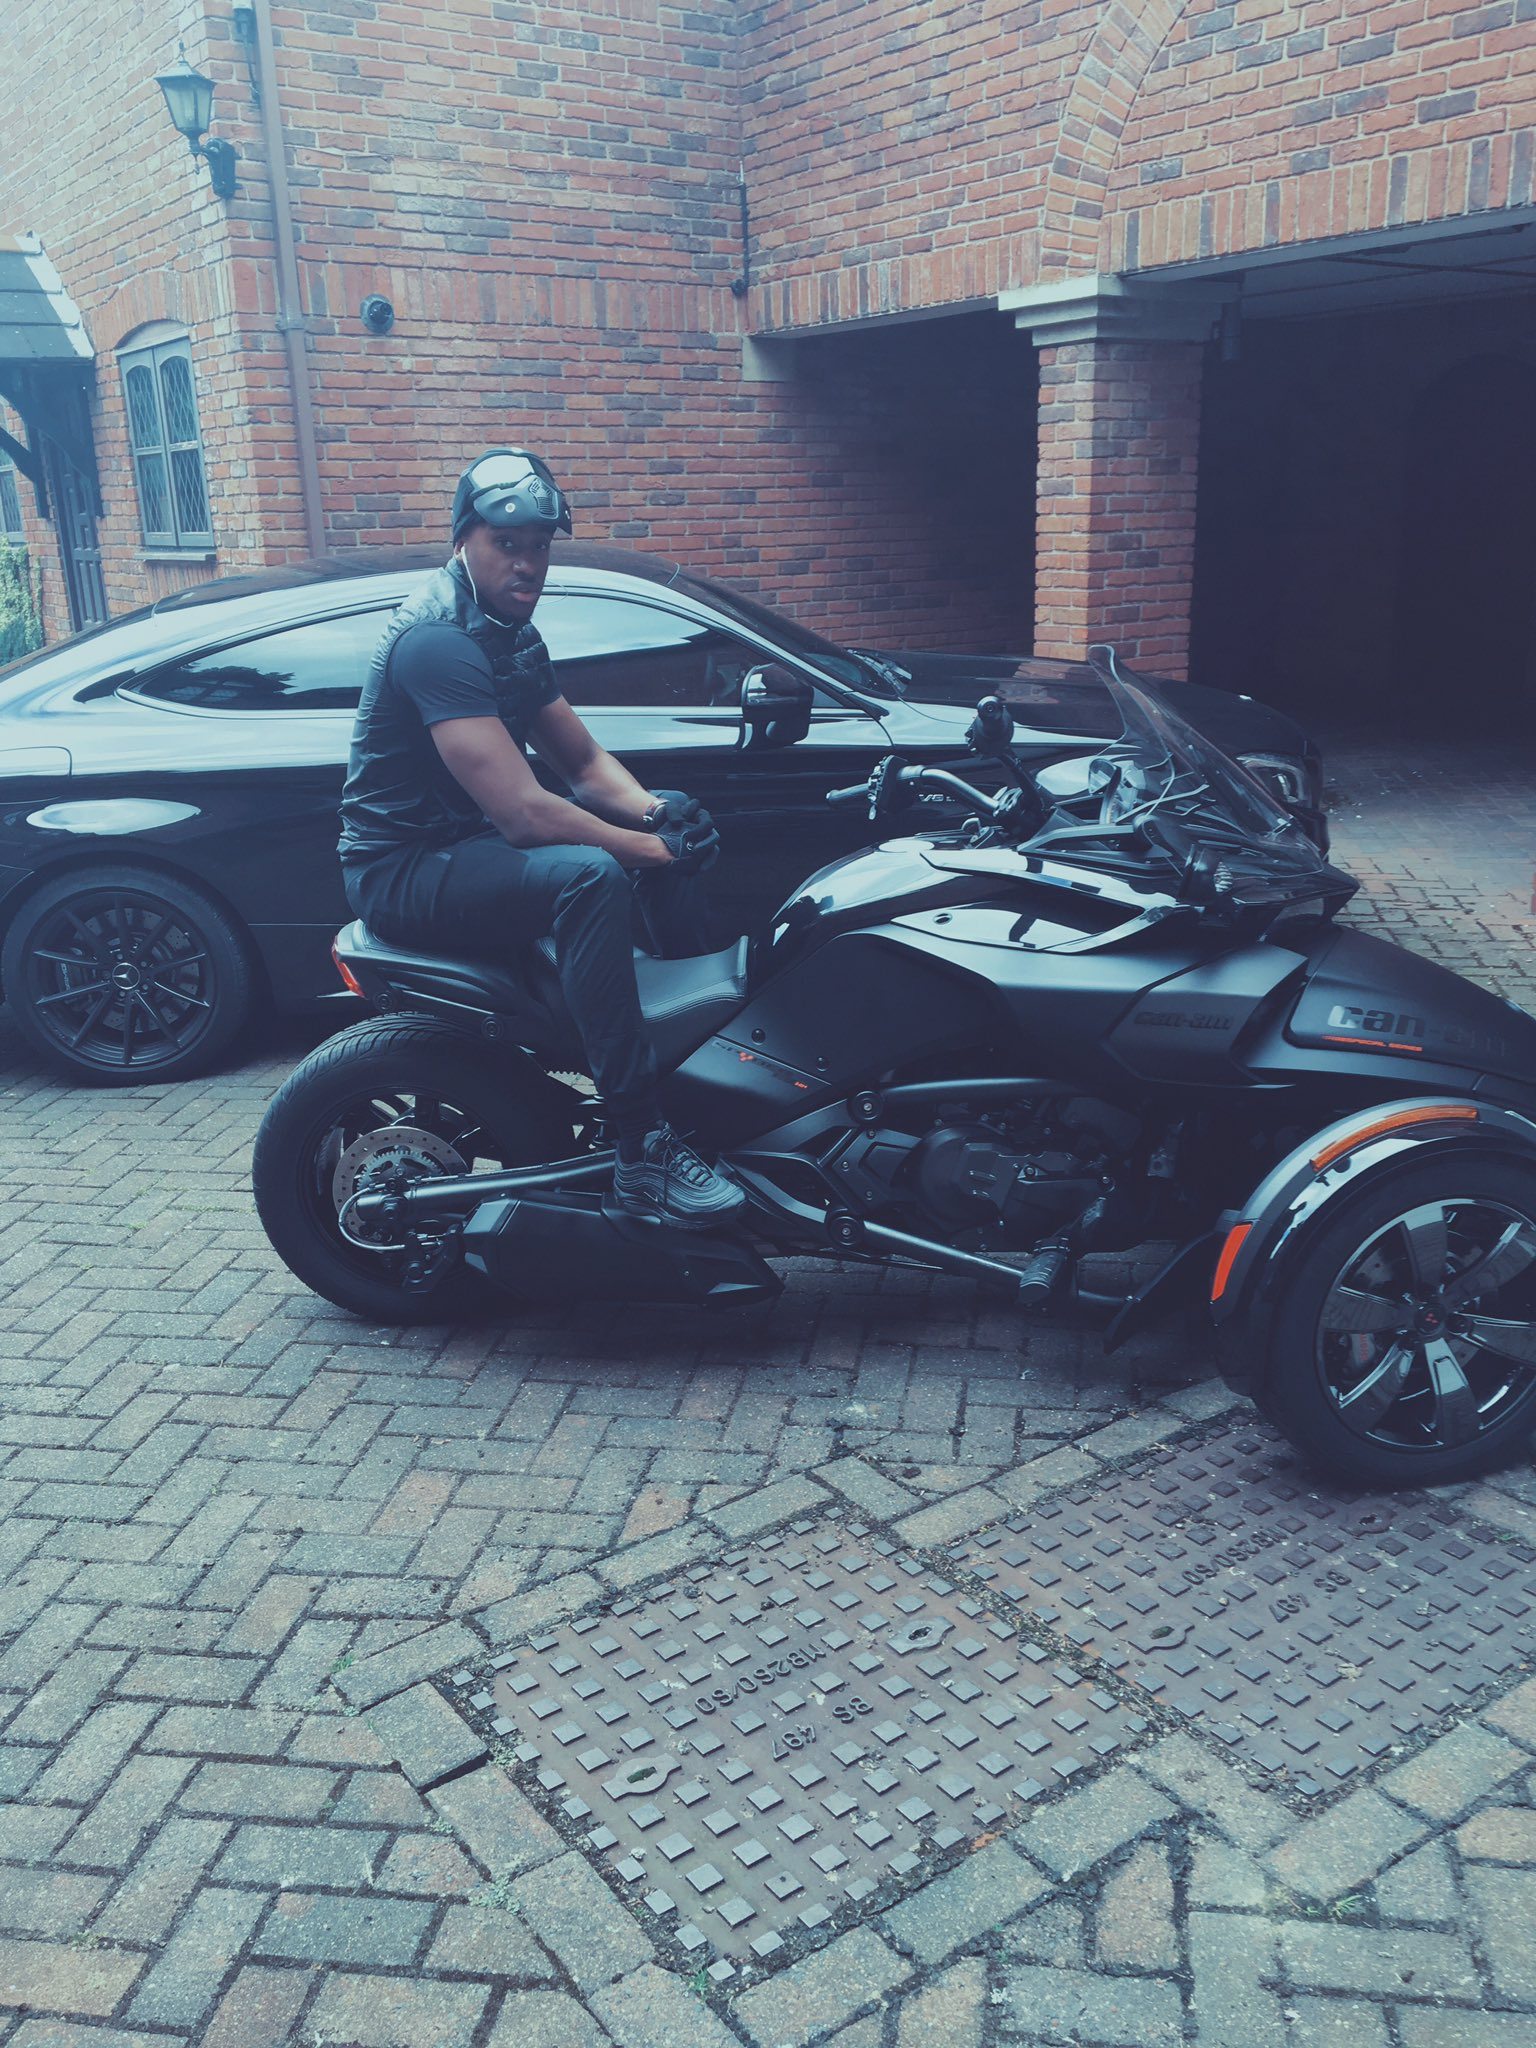 New Bike And Car Wallpaper Bugzy Malone On Twitter Quot Wearing The Triple Black 97 S In